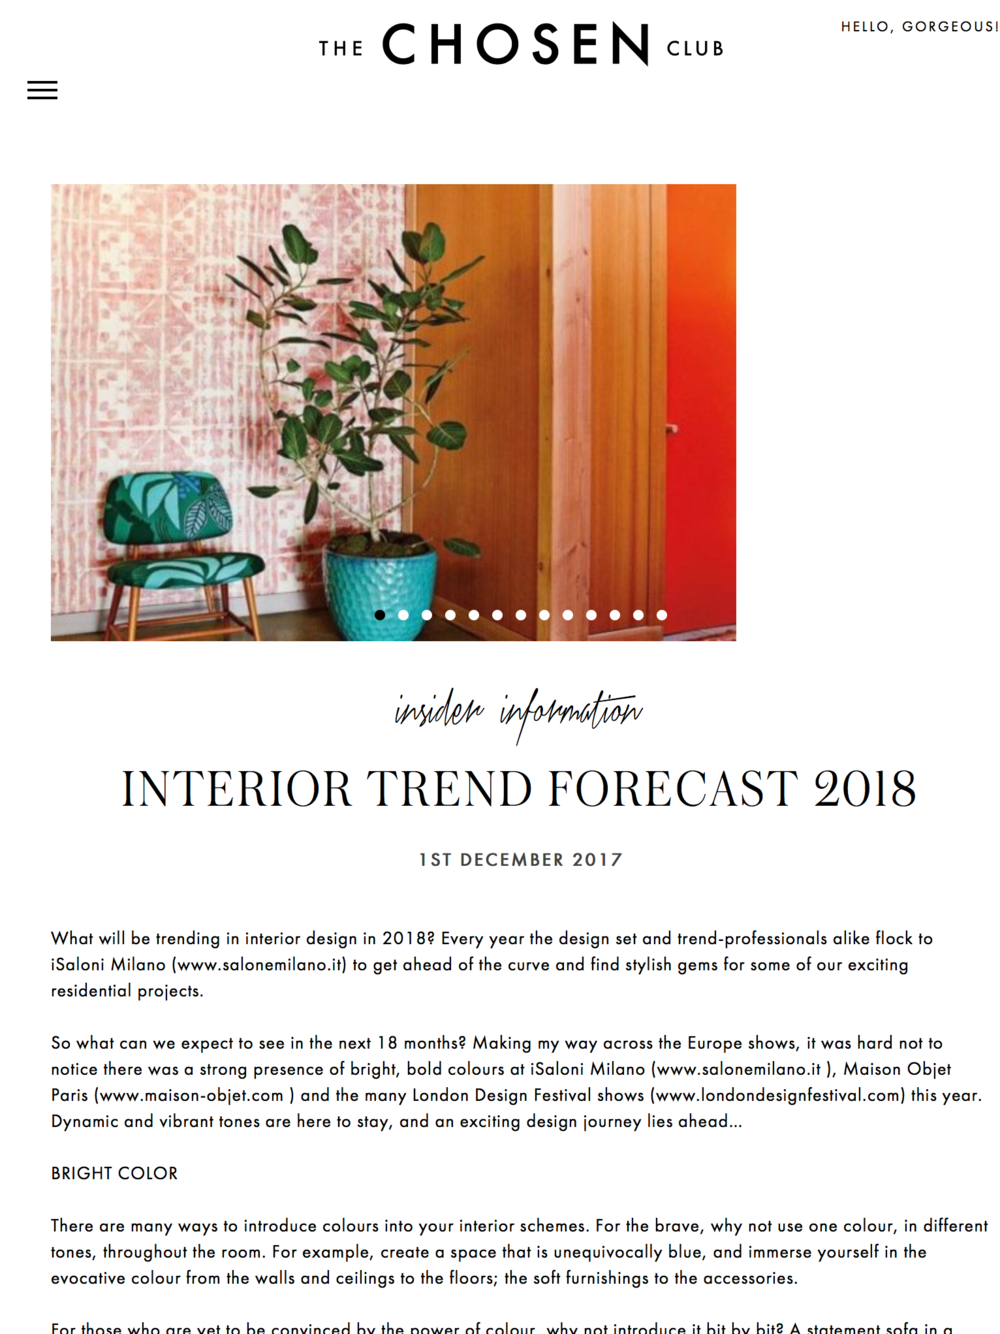 The Chosen Club, Interior Trend Forecast 2018. Designed by Woulfe, Brian Woulfe